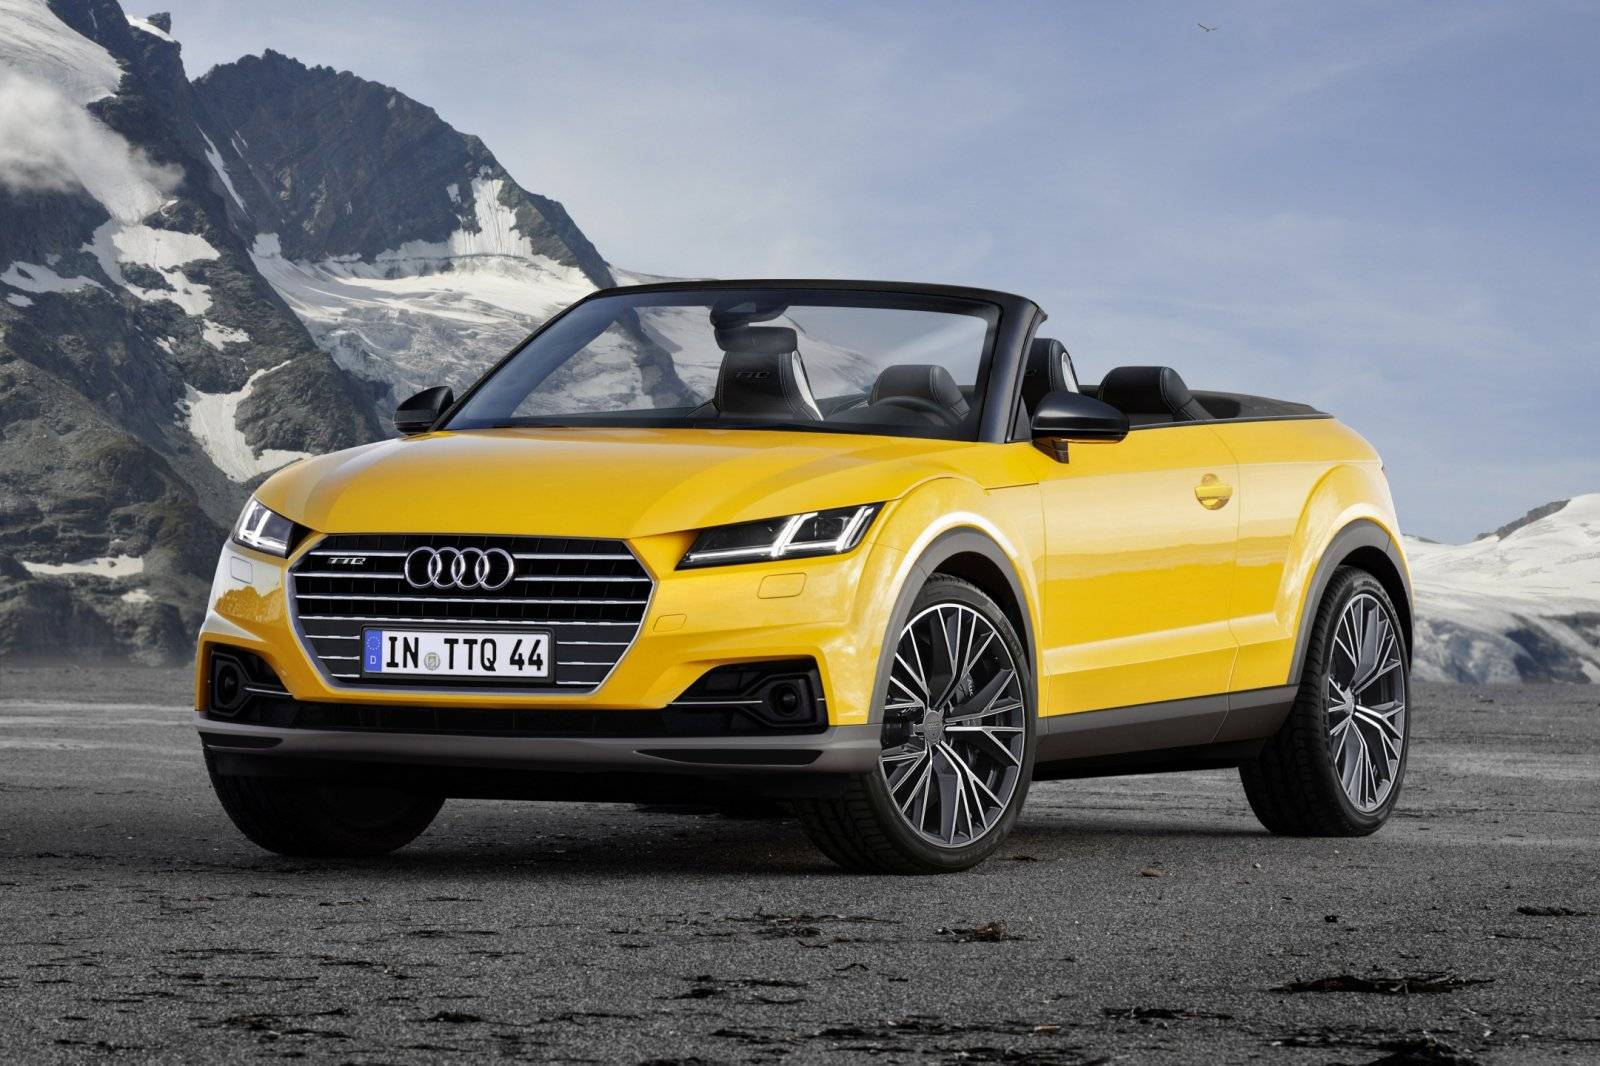 audi ttq cabrio opent aanval op de evoque autonieuws. Black Bedroom Furniture Sets. Home Design Ideas